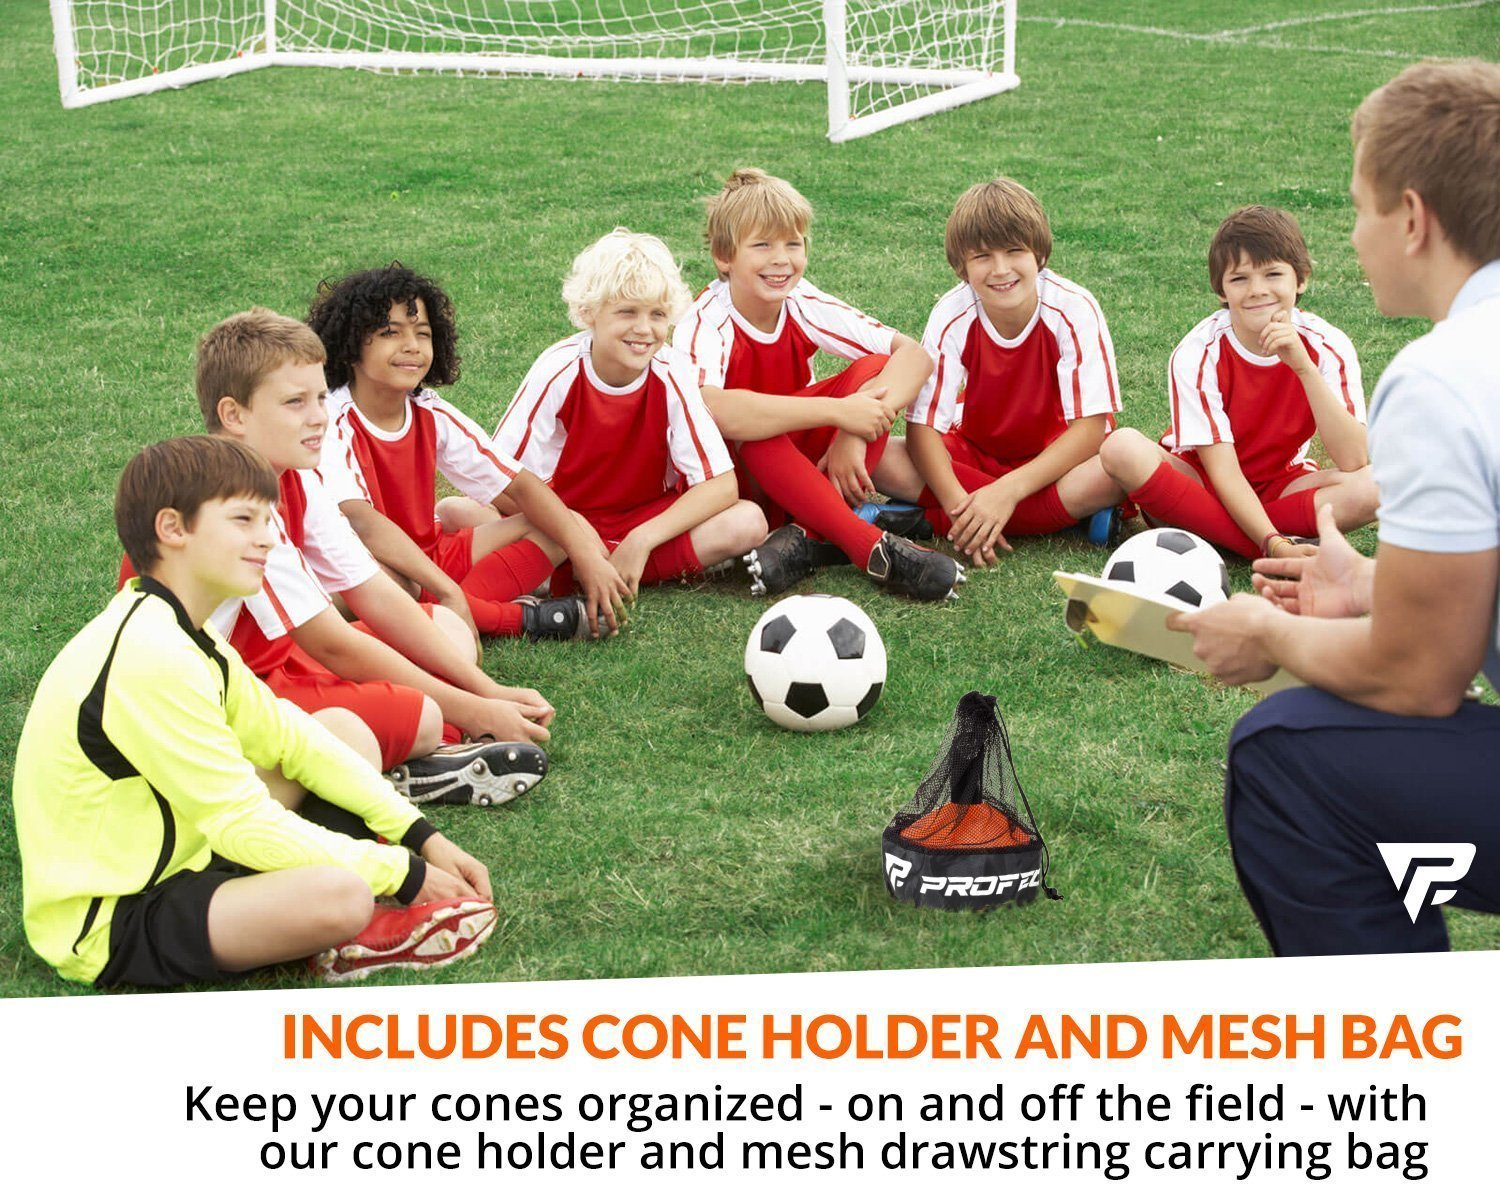 Pro Disc Cones (Set of 50) - Agility Soccer Cones with Carry Bag and Holder for Training, Football, Kids, Sports, Field Cone Markers - Includes Top 15 Drills eBook (Bright Orange) by Profect Sports (Image #4)